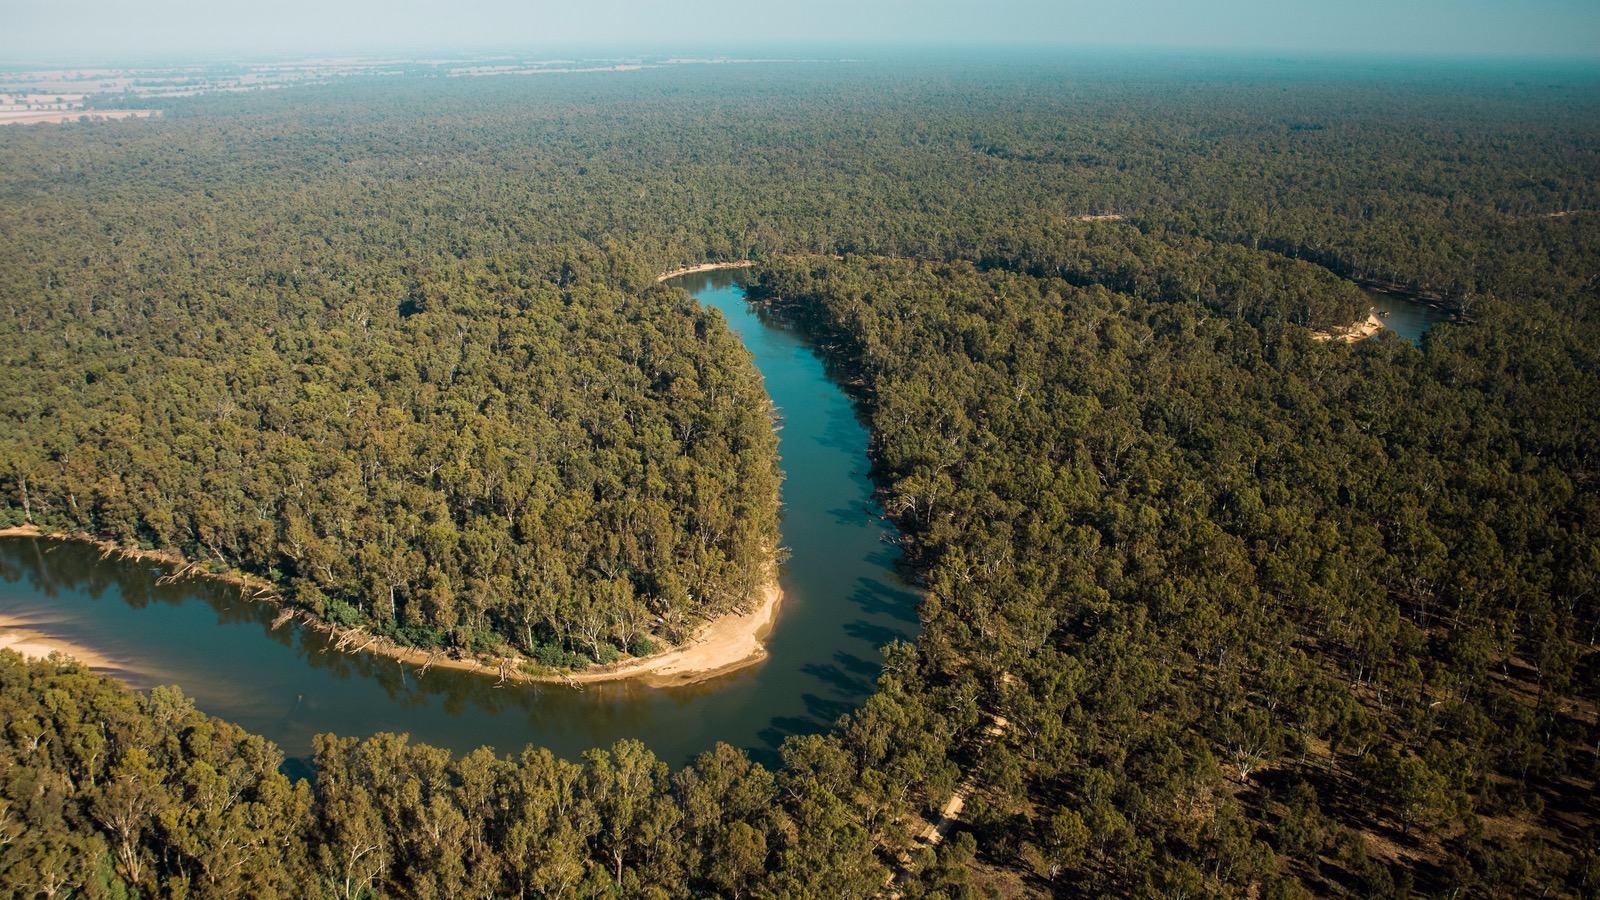 The Murray river, flight into the wilderness.